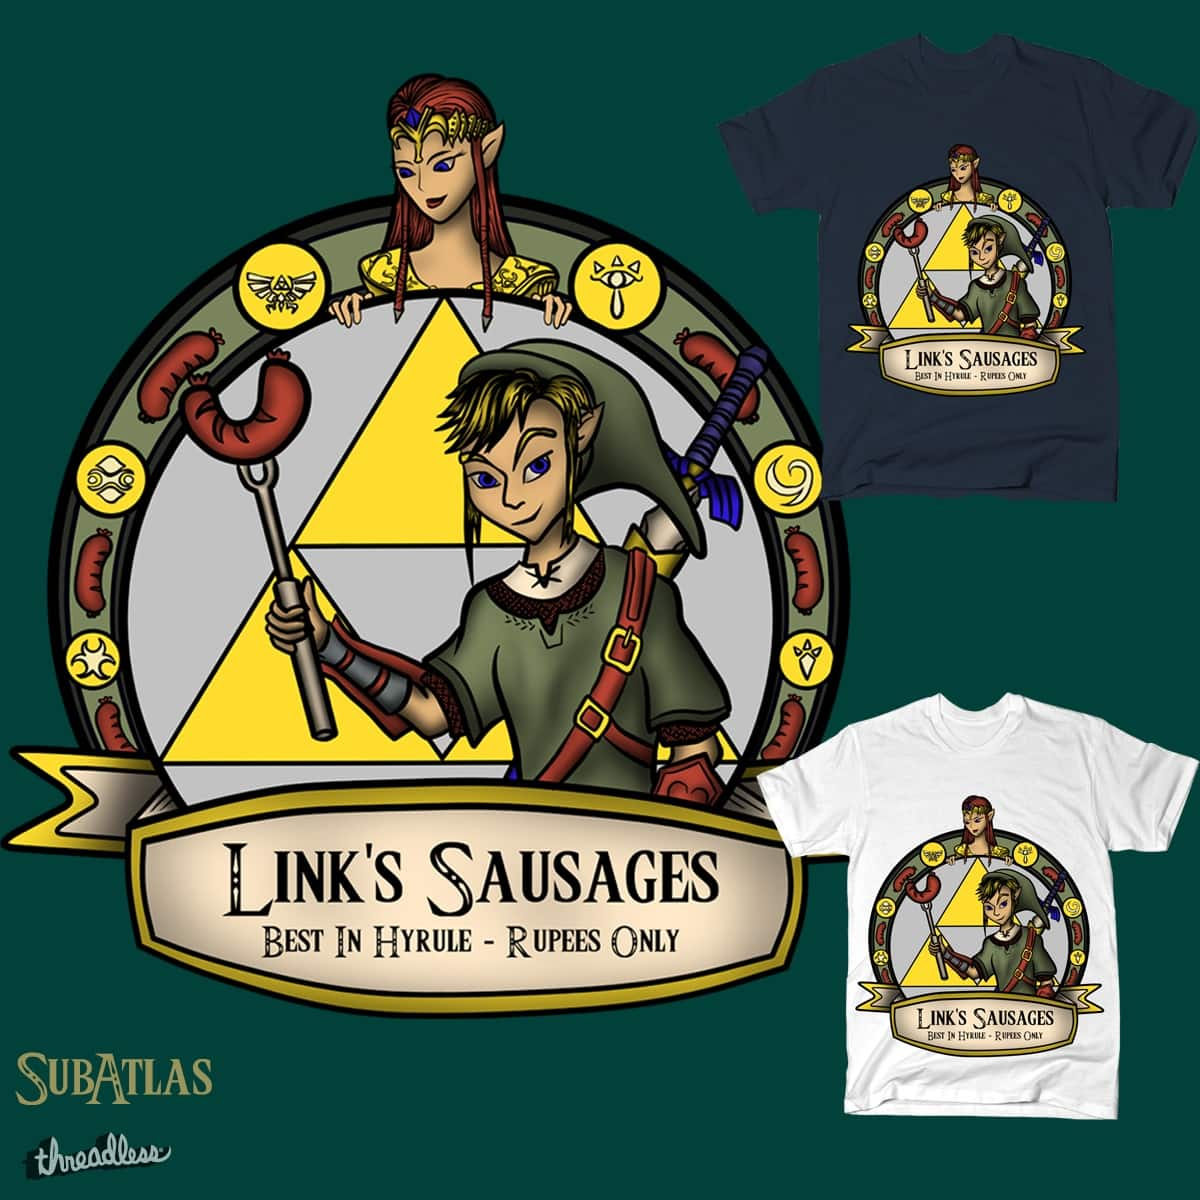 Link's Sausages by subatlas on Threadless